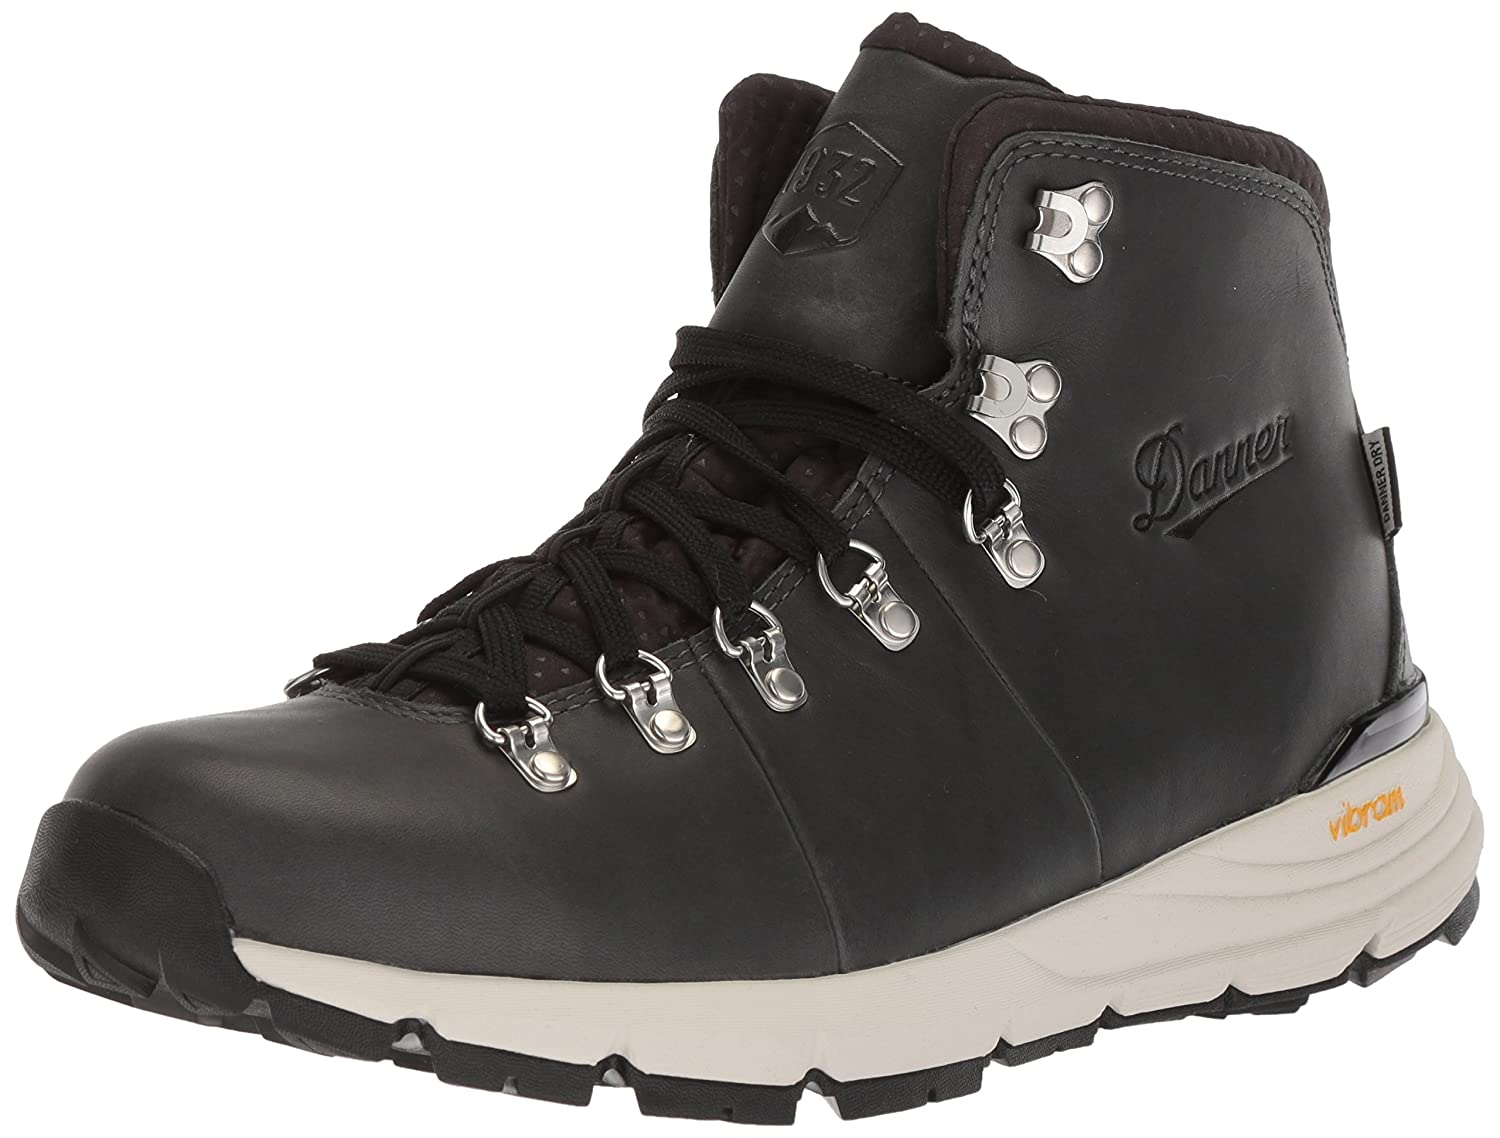 Man's/Woman's Danner Men's Mountain 600 B074KK9K5N Boots Elegant First and sturdy set meal Quality First Elegant Cheap order 9a4480